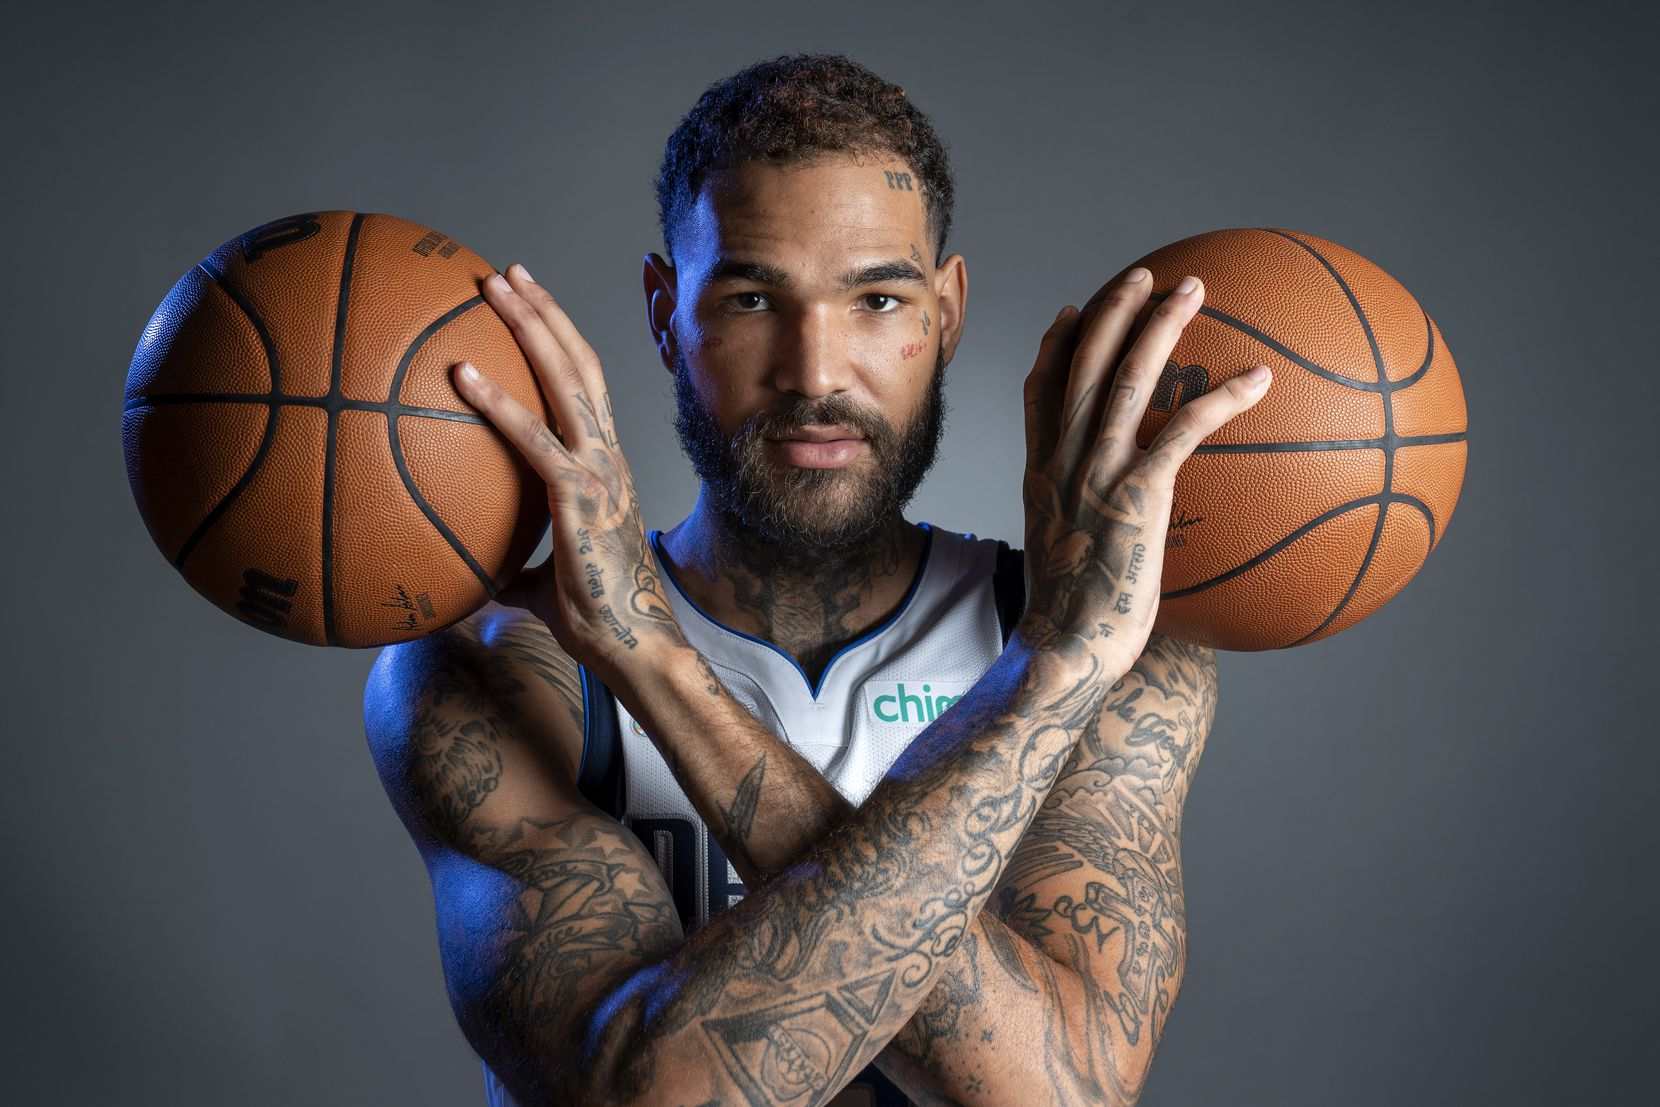 Dallas Mavericks center Willie Cauley-Stein (33) poses for a portrait during the Dallas Mavericks media day, Monday, September 27, 2021 at American Airlines Center in Dallas.